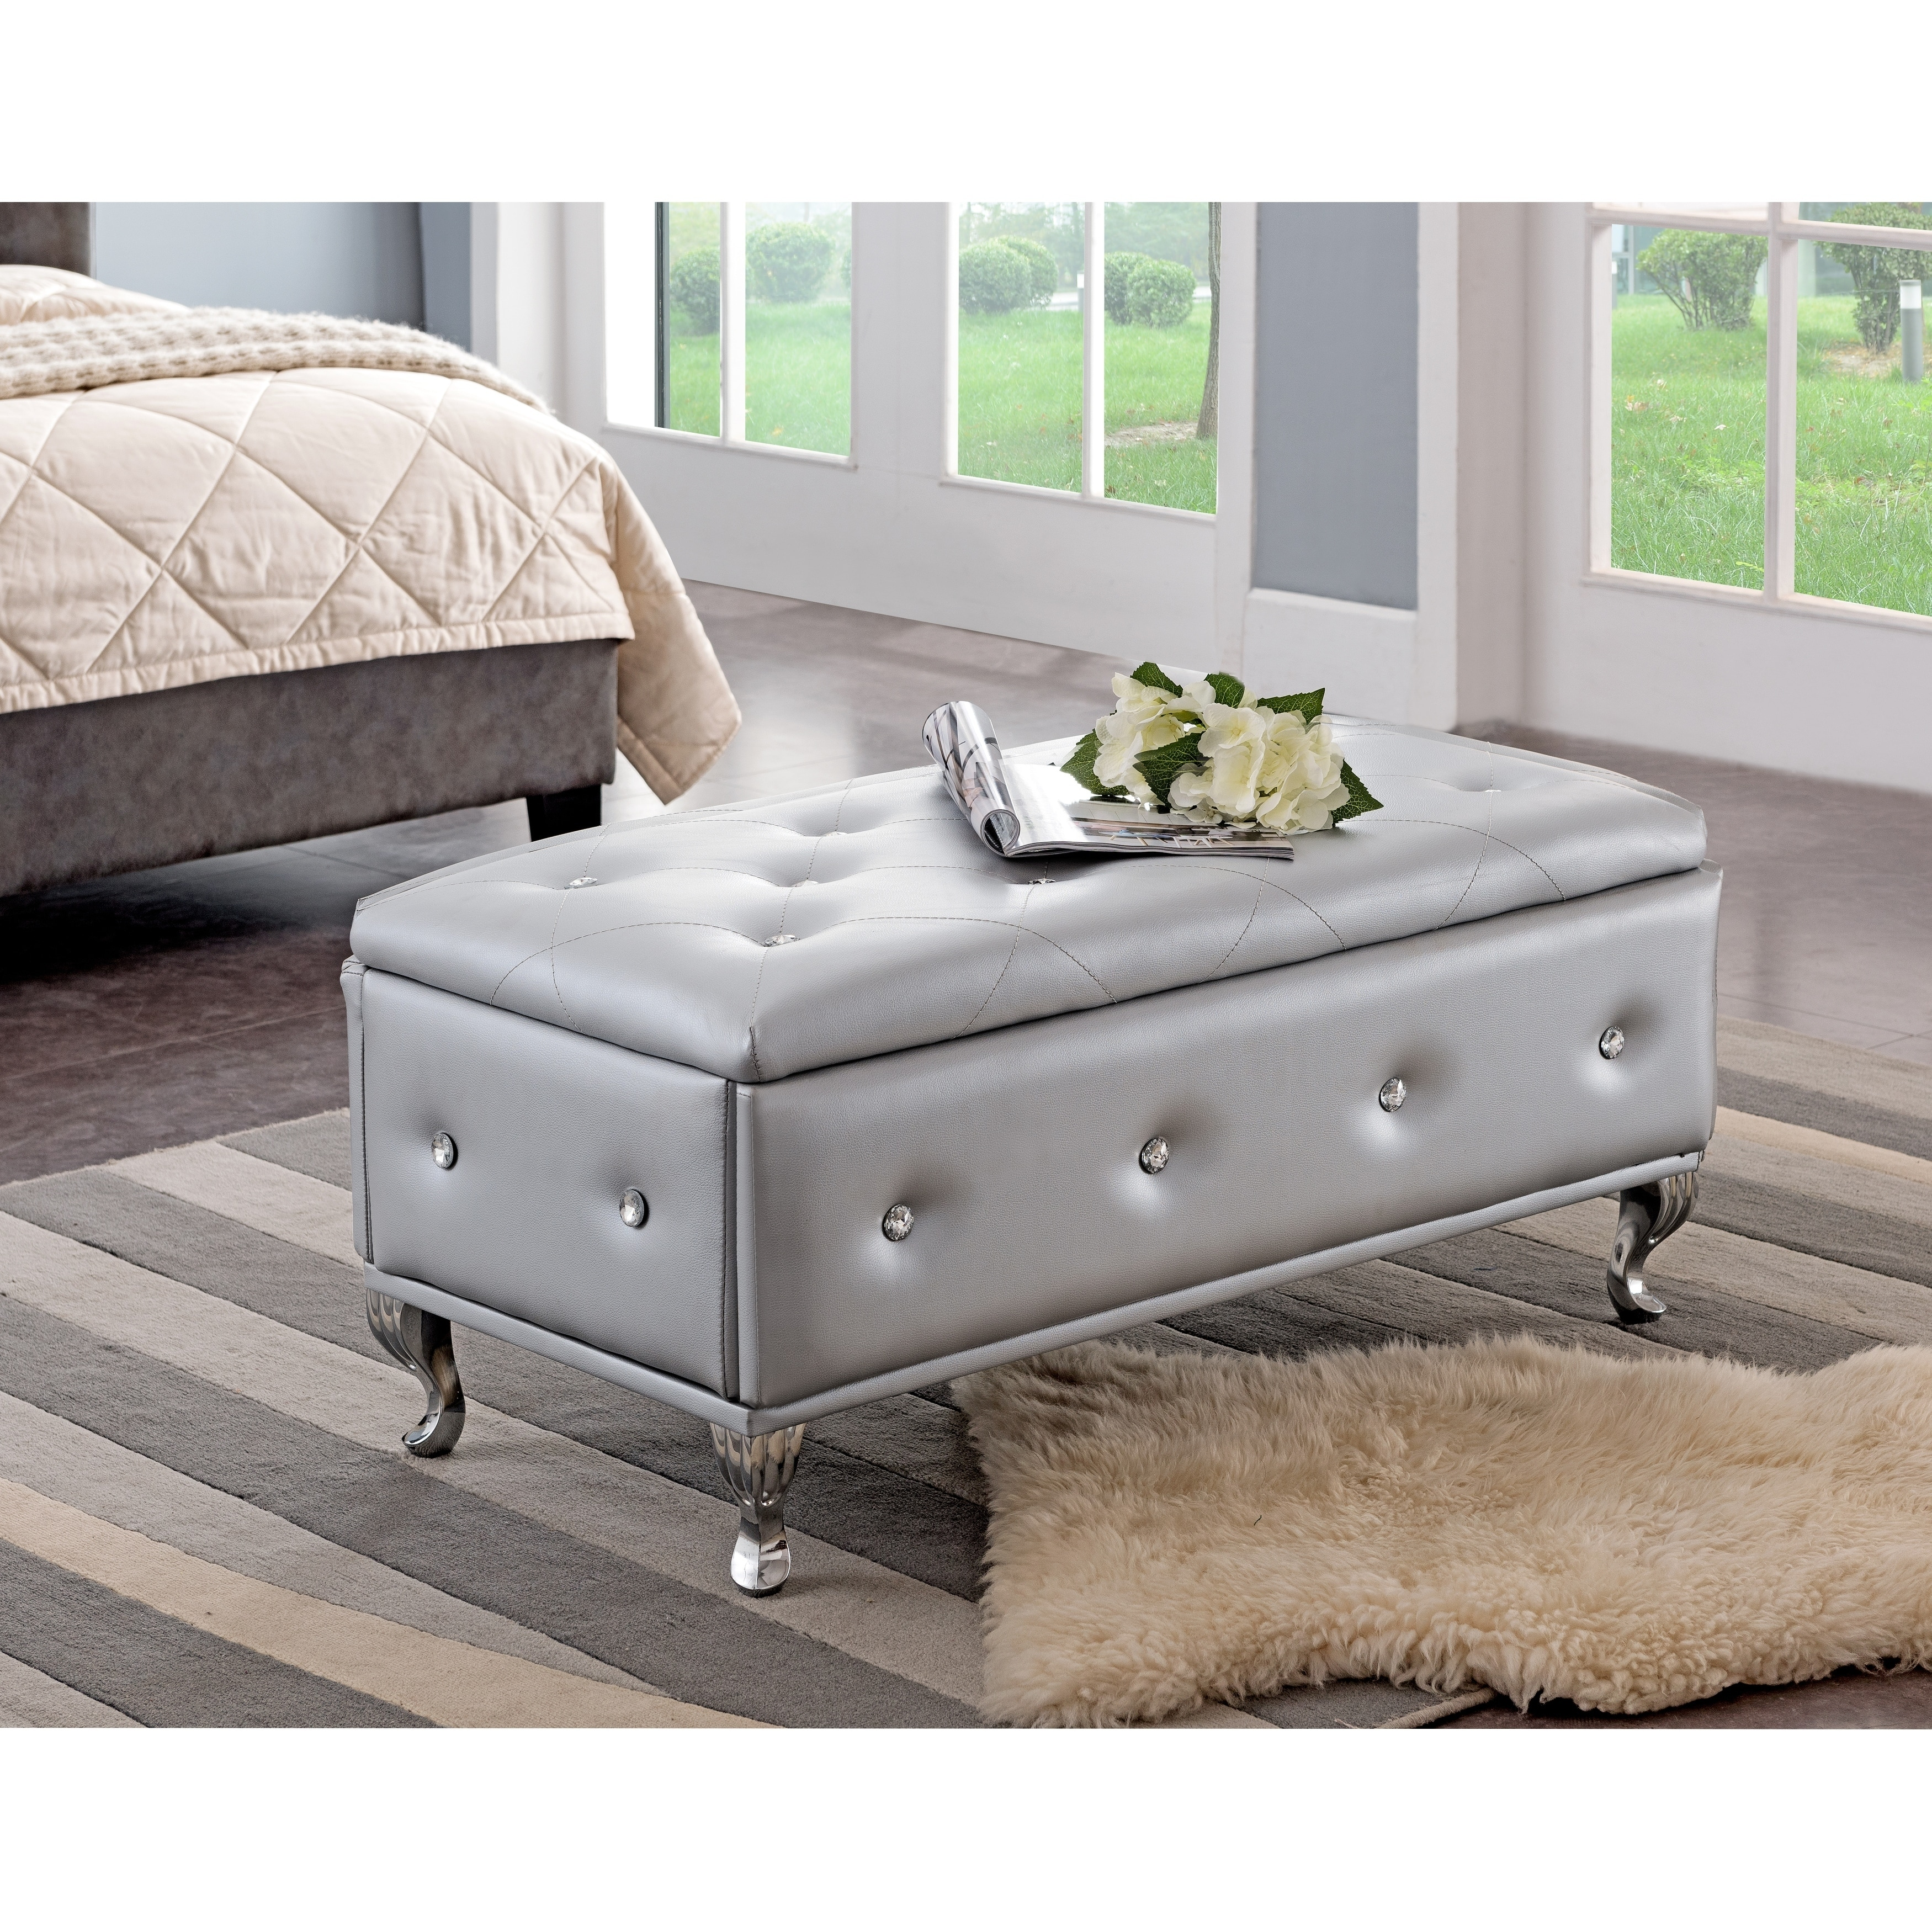 Peachy Silvertone Leather Contemporary Storage Bench Theyellowbook Wood Chair Design Ideas Theyellowbookinfo